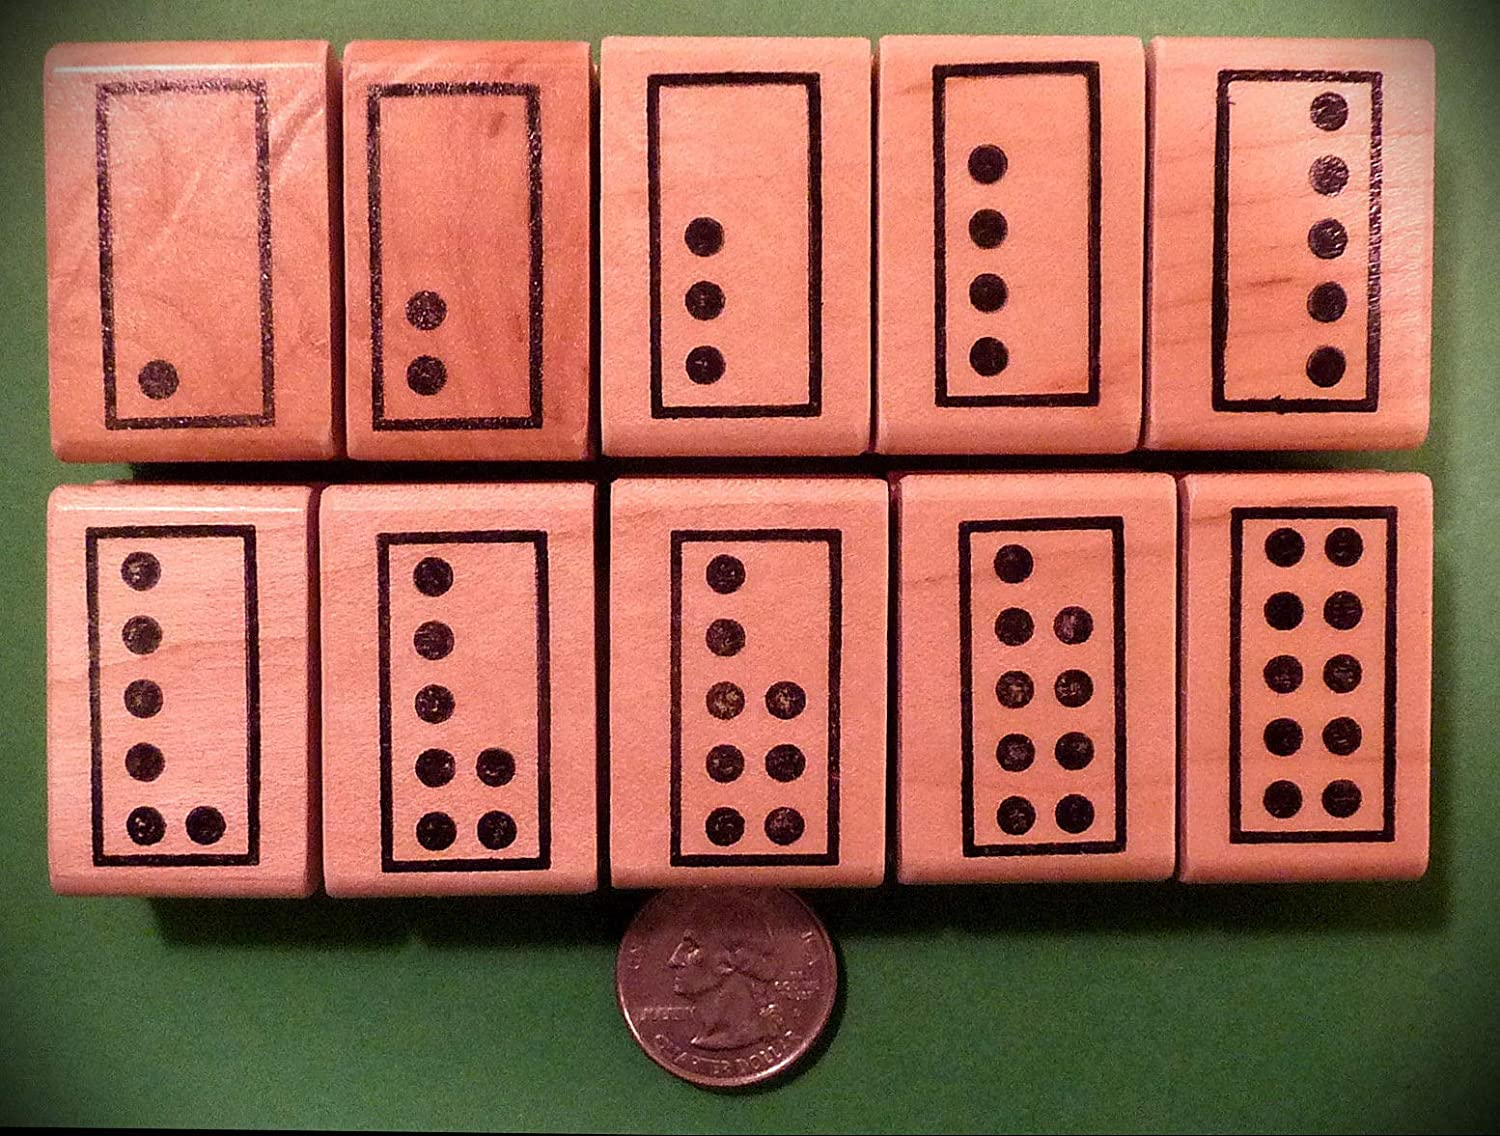 Rubber Stamps Singapore Math Number Tiles, Teachers Set of 10 Stamp for Teaching Card Making, DIY Crafts, Scrapbooking